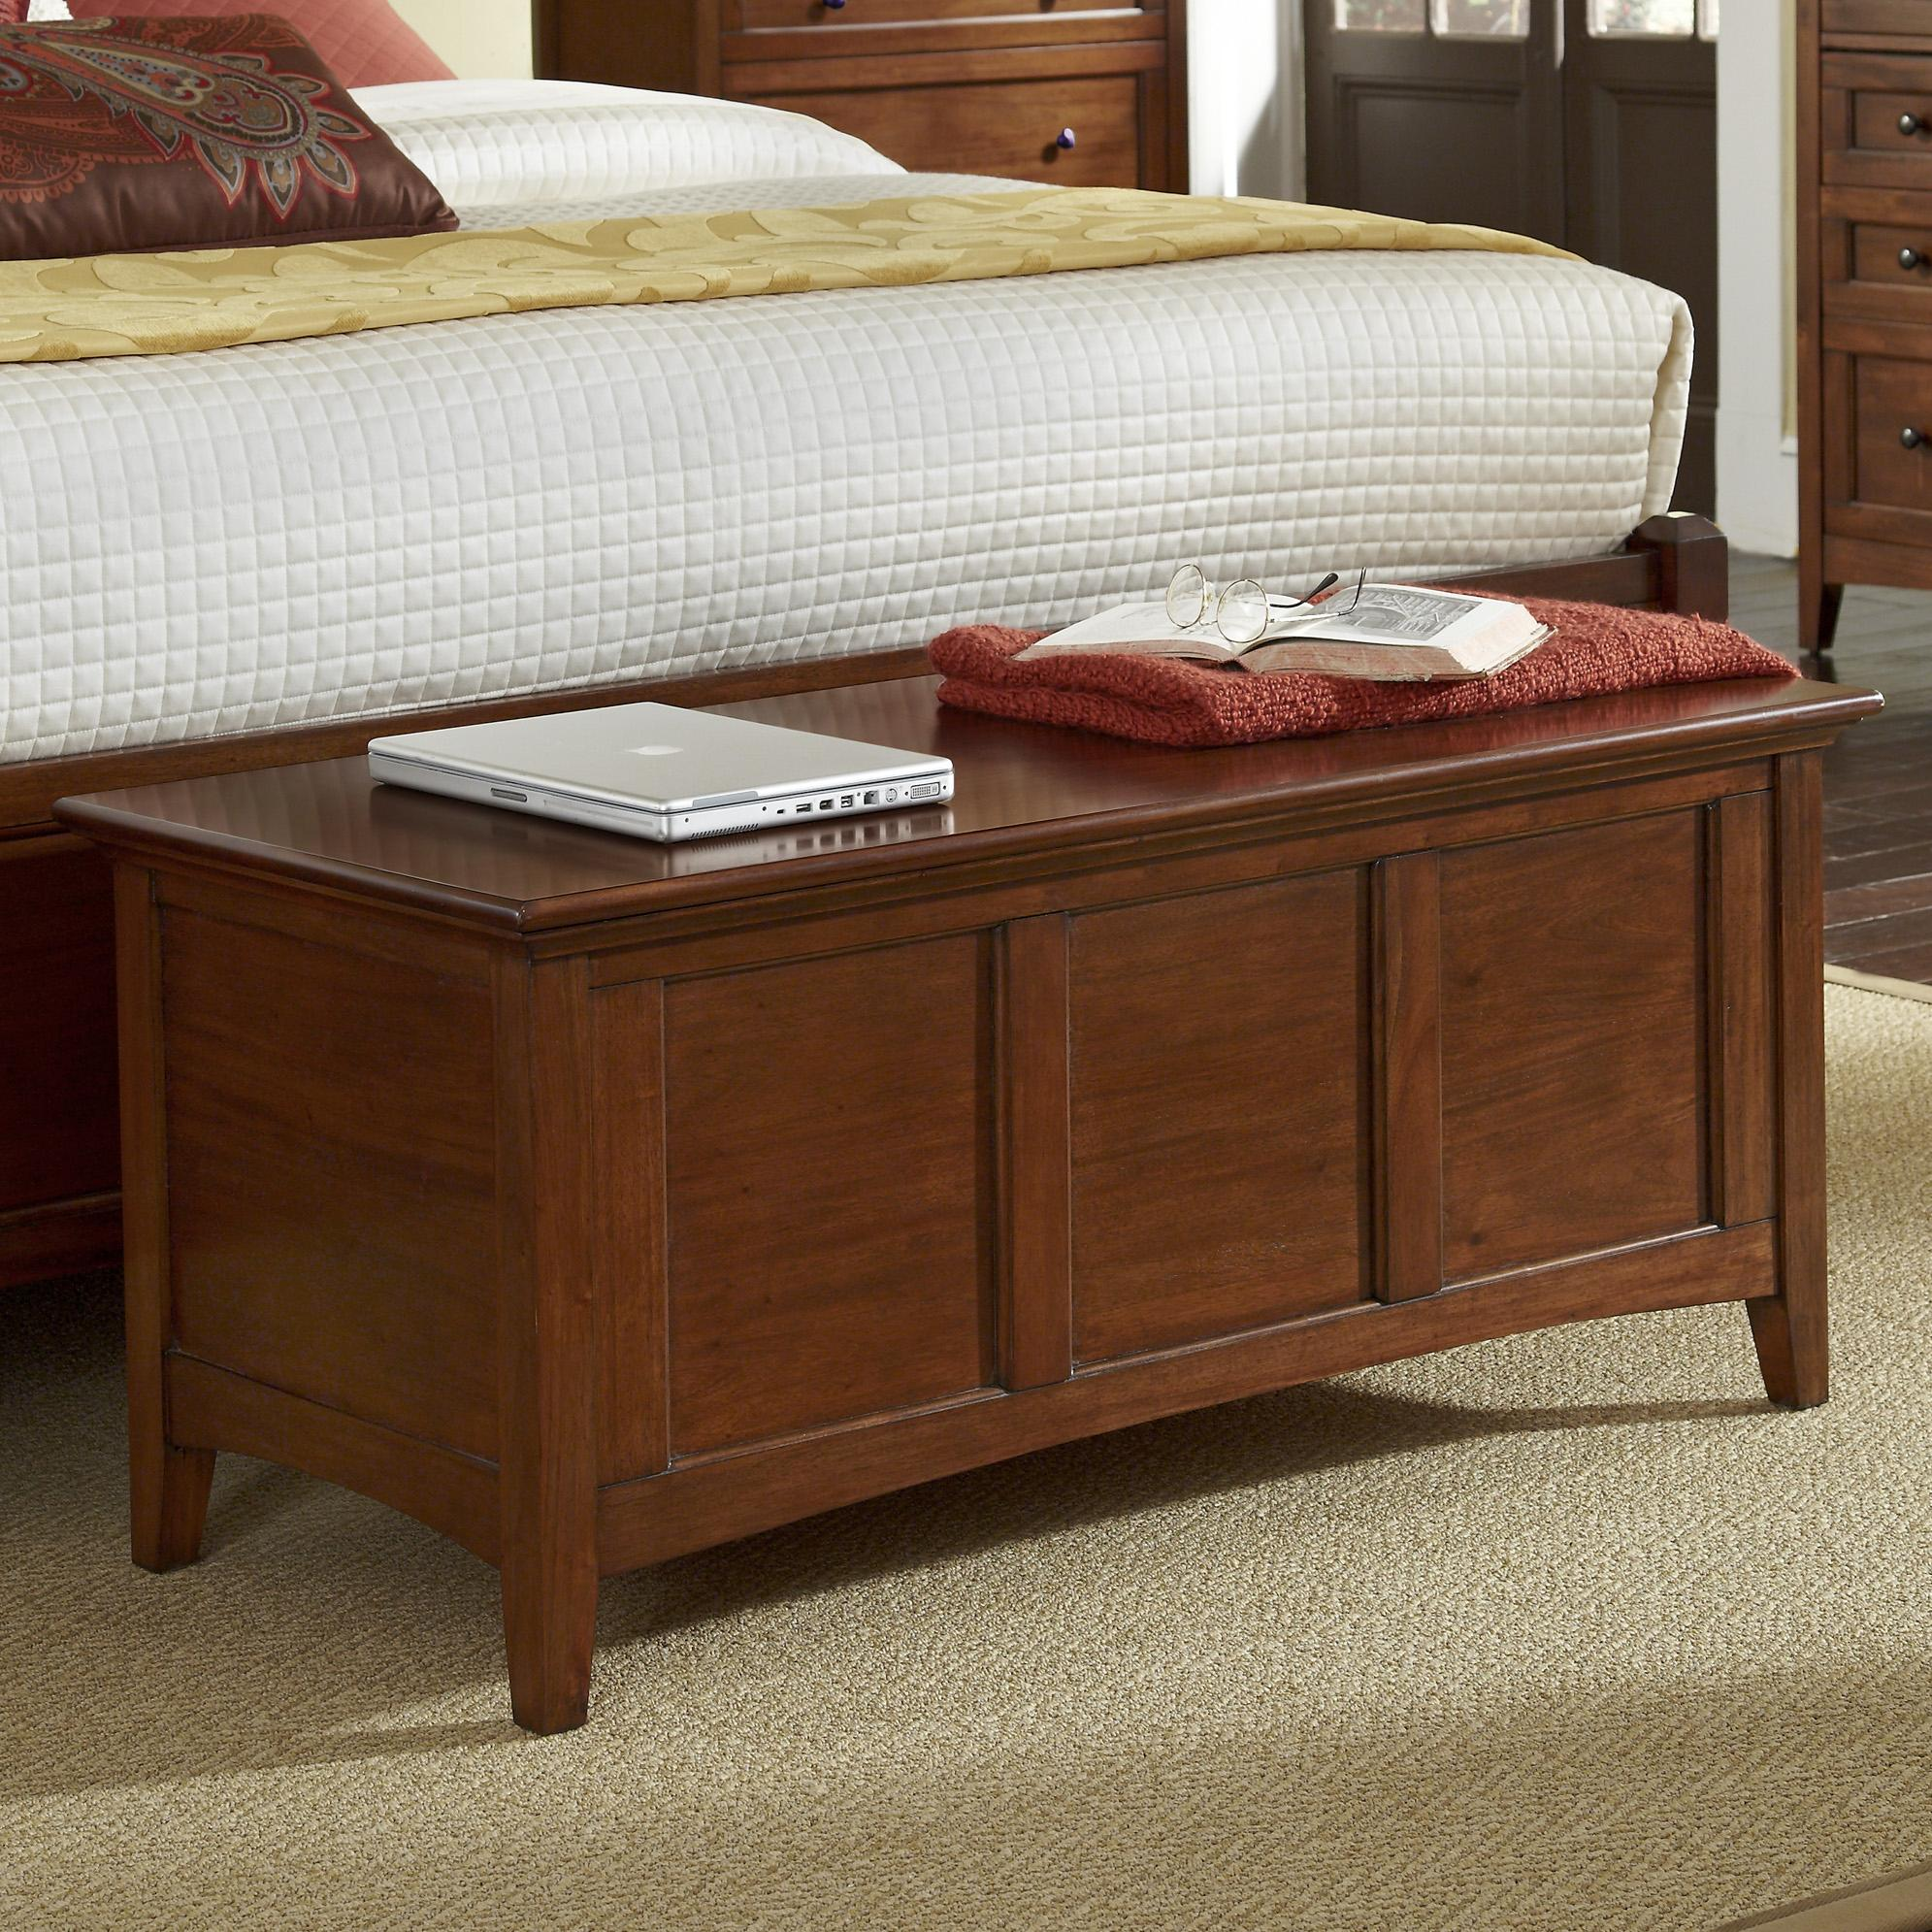 Westlake Transitional Cedar Lined Storage Trunk by AAmerica at SuperStore